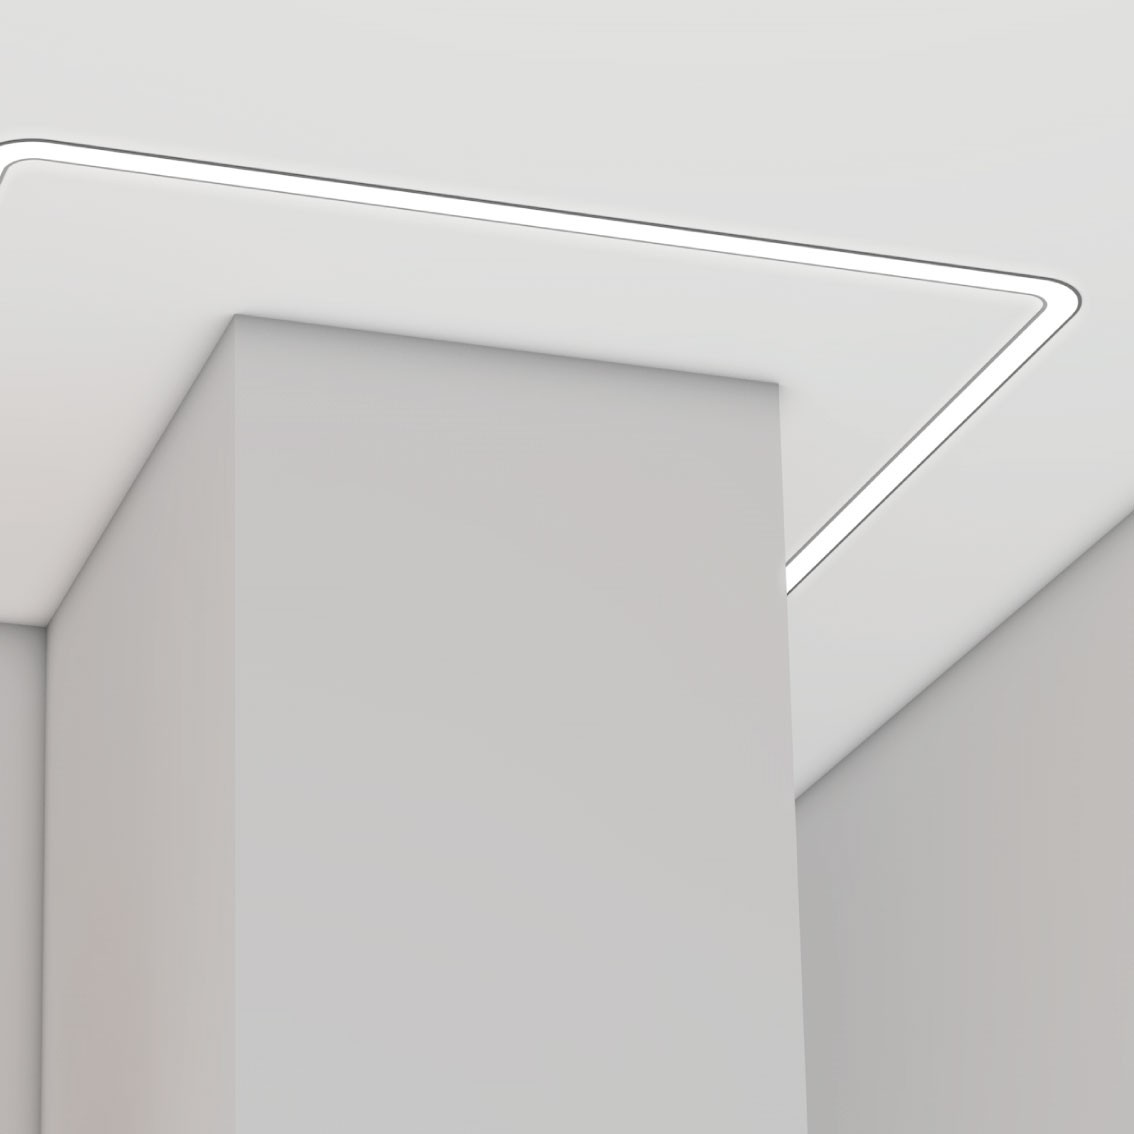 Curved led lighting profile 100mm wide item LW-CR100